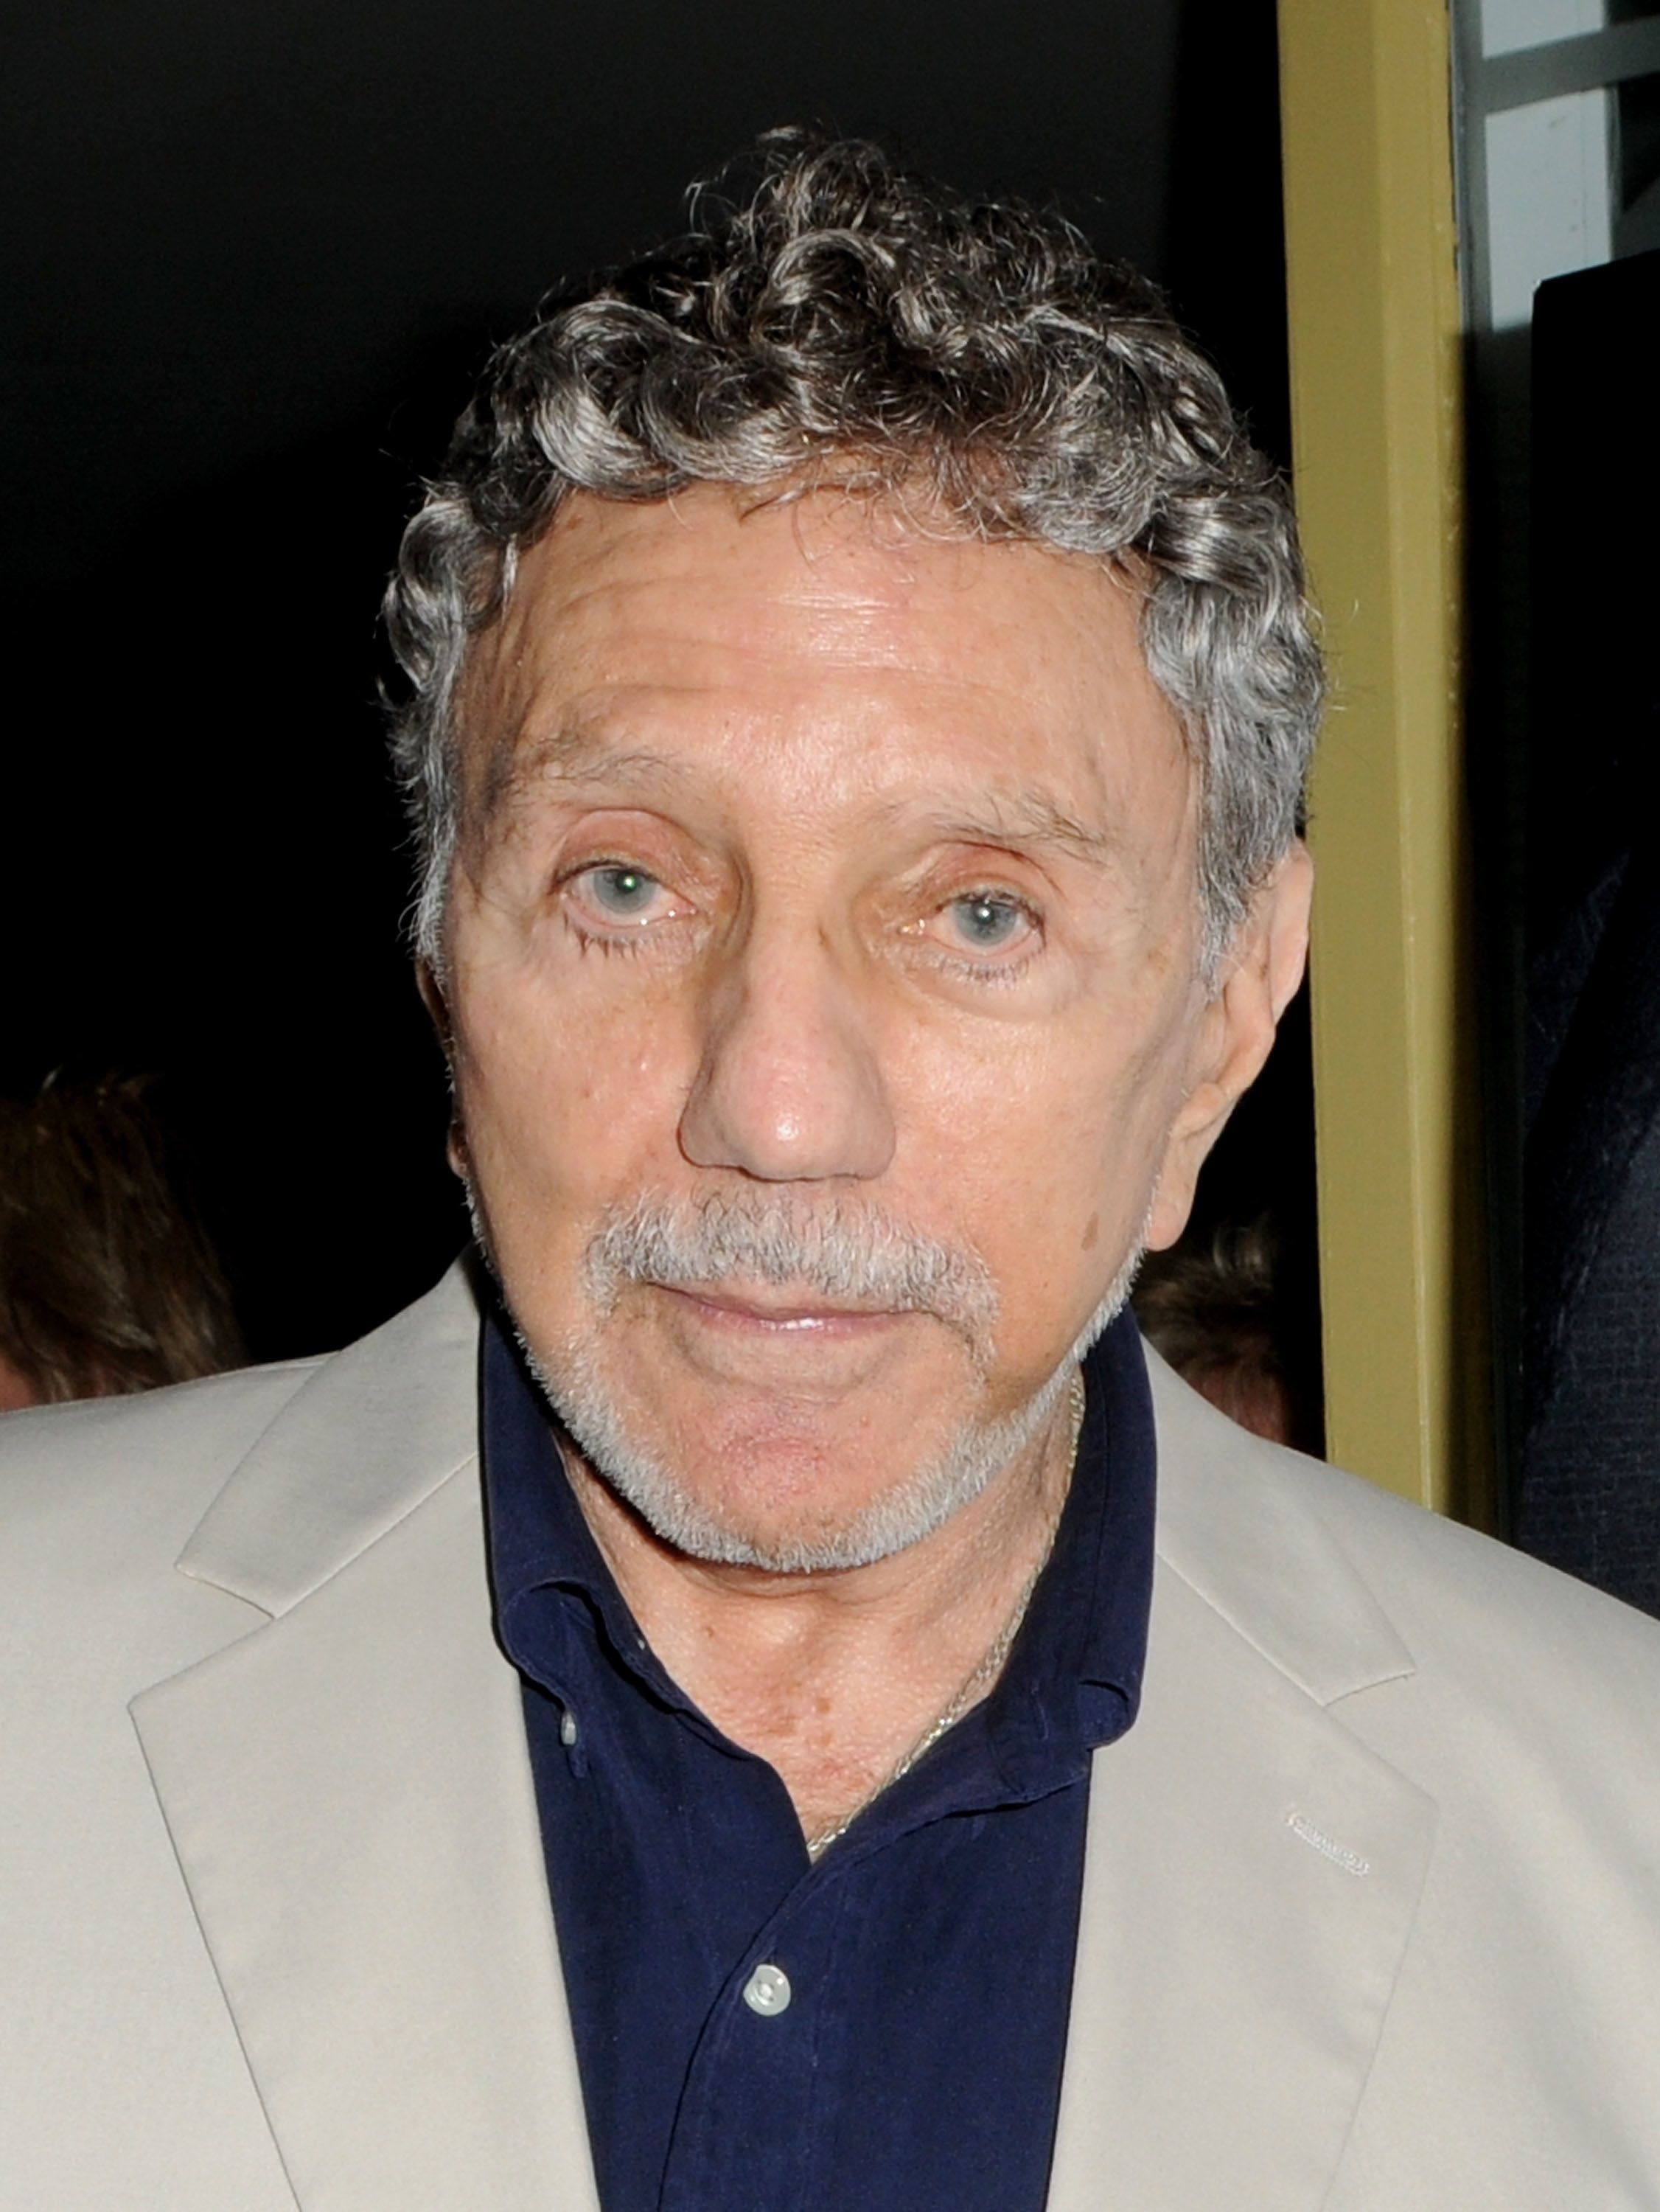 NEW YORK - SEPTEMBER 29:  Writer/Producer William Peter Blatty attends the special screening of 'The Exorcist Extended Director's Cut' at Il Gattopardo on September 29, 2010 in New York City.  (Photo by George Napolitano/Getty Images)